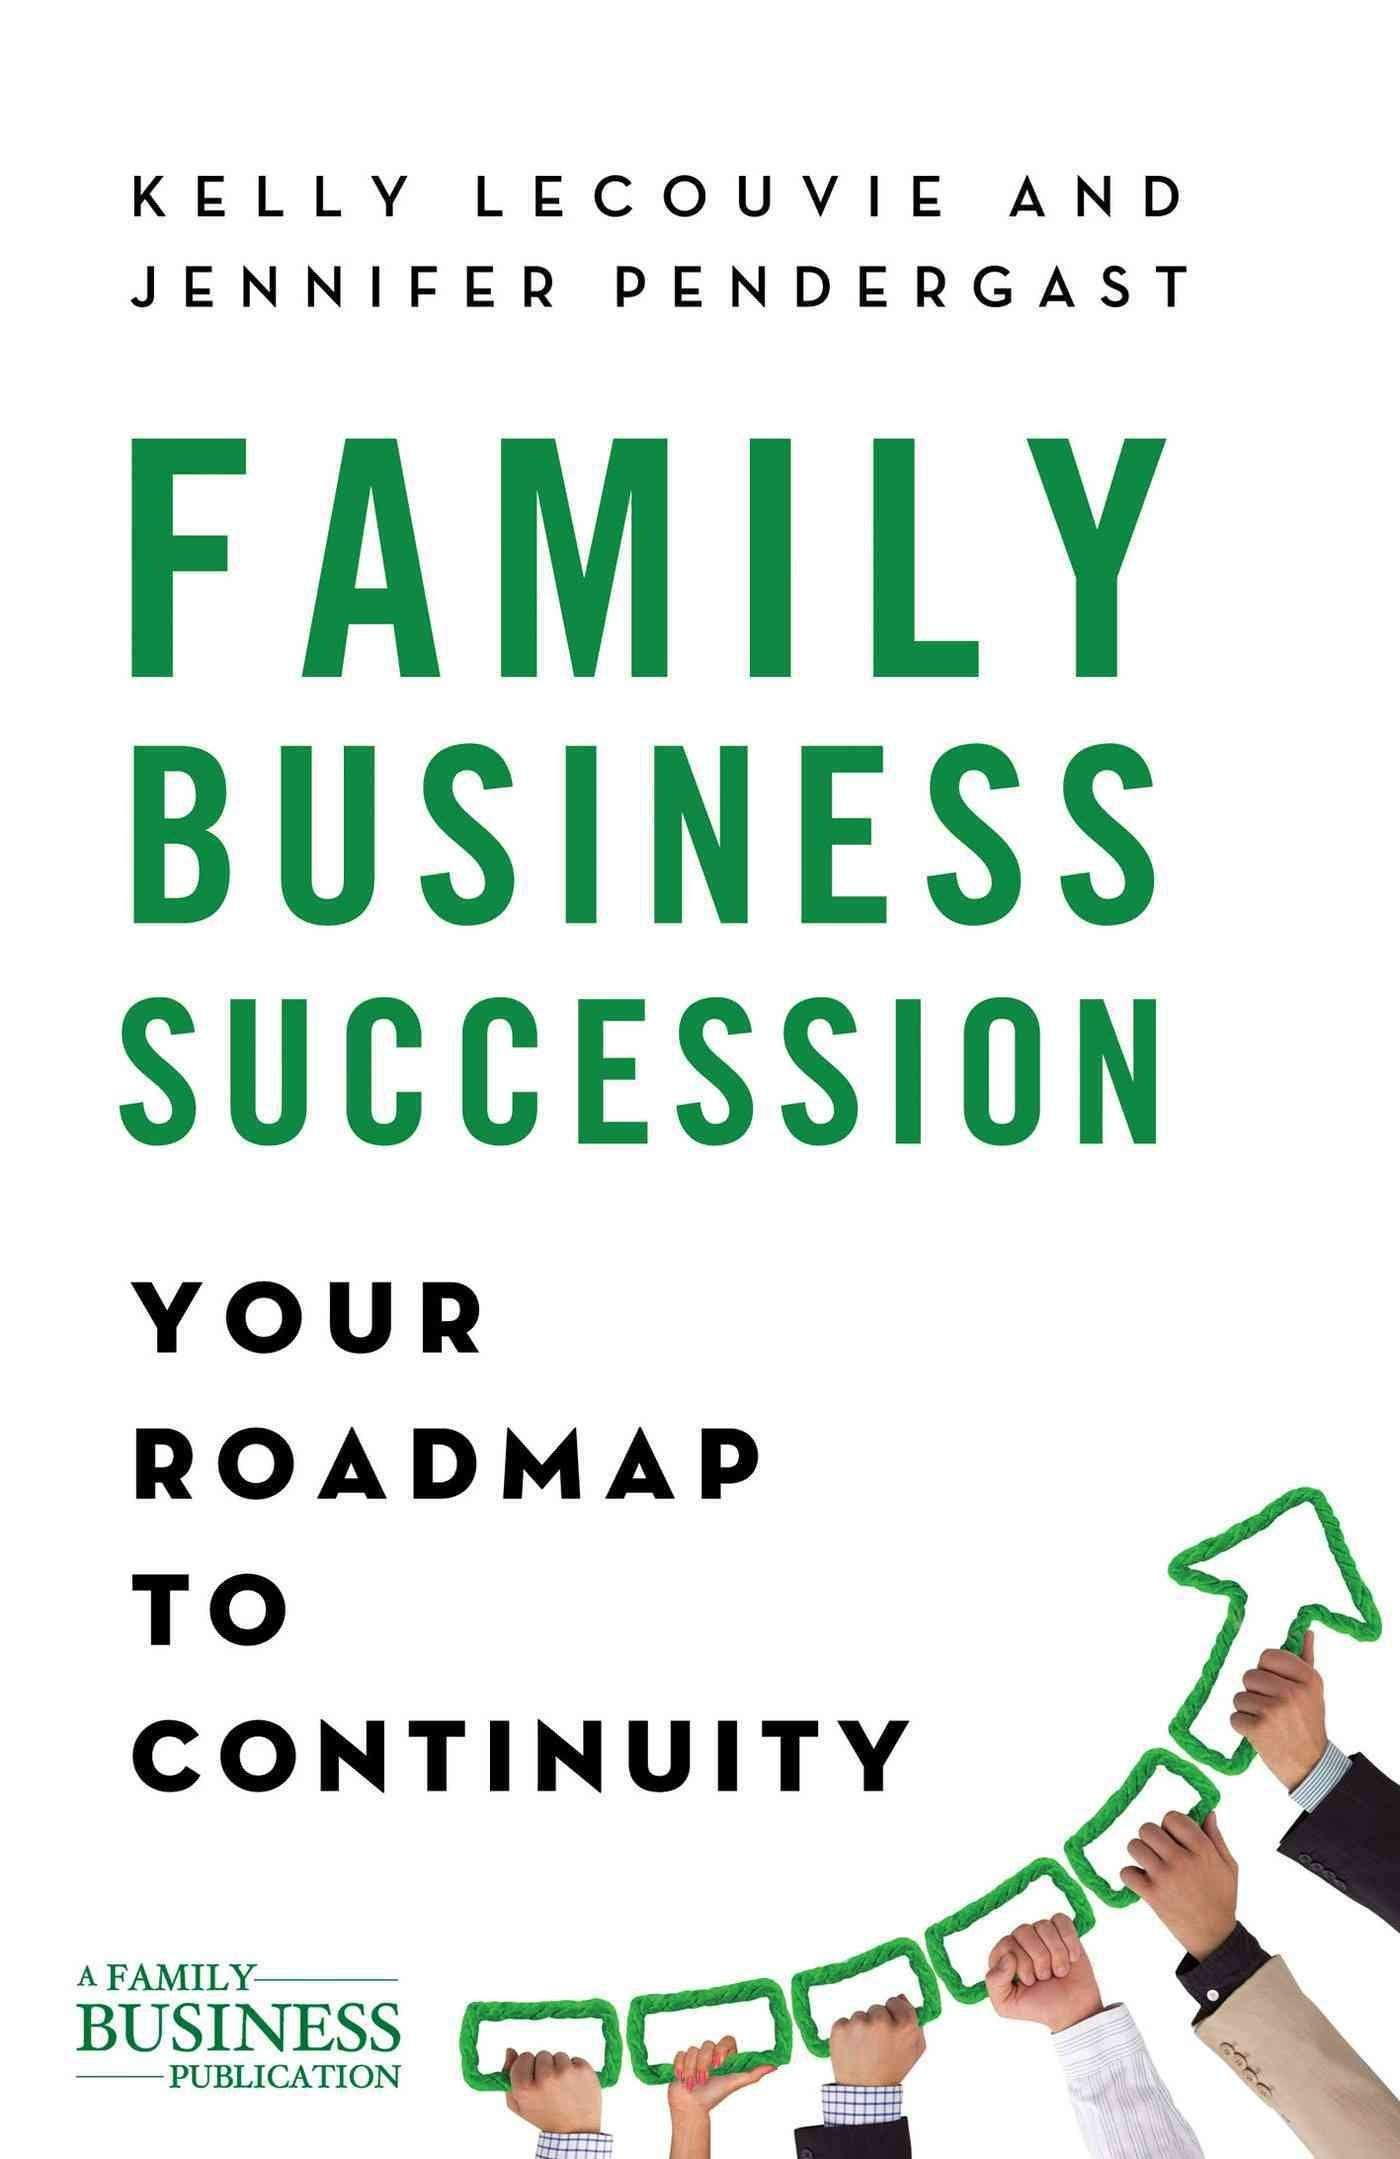 Family Business Succession Your Roadmap to Continuity in